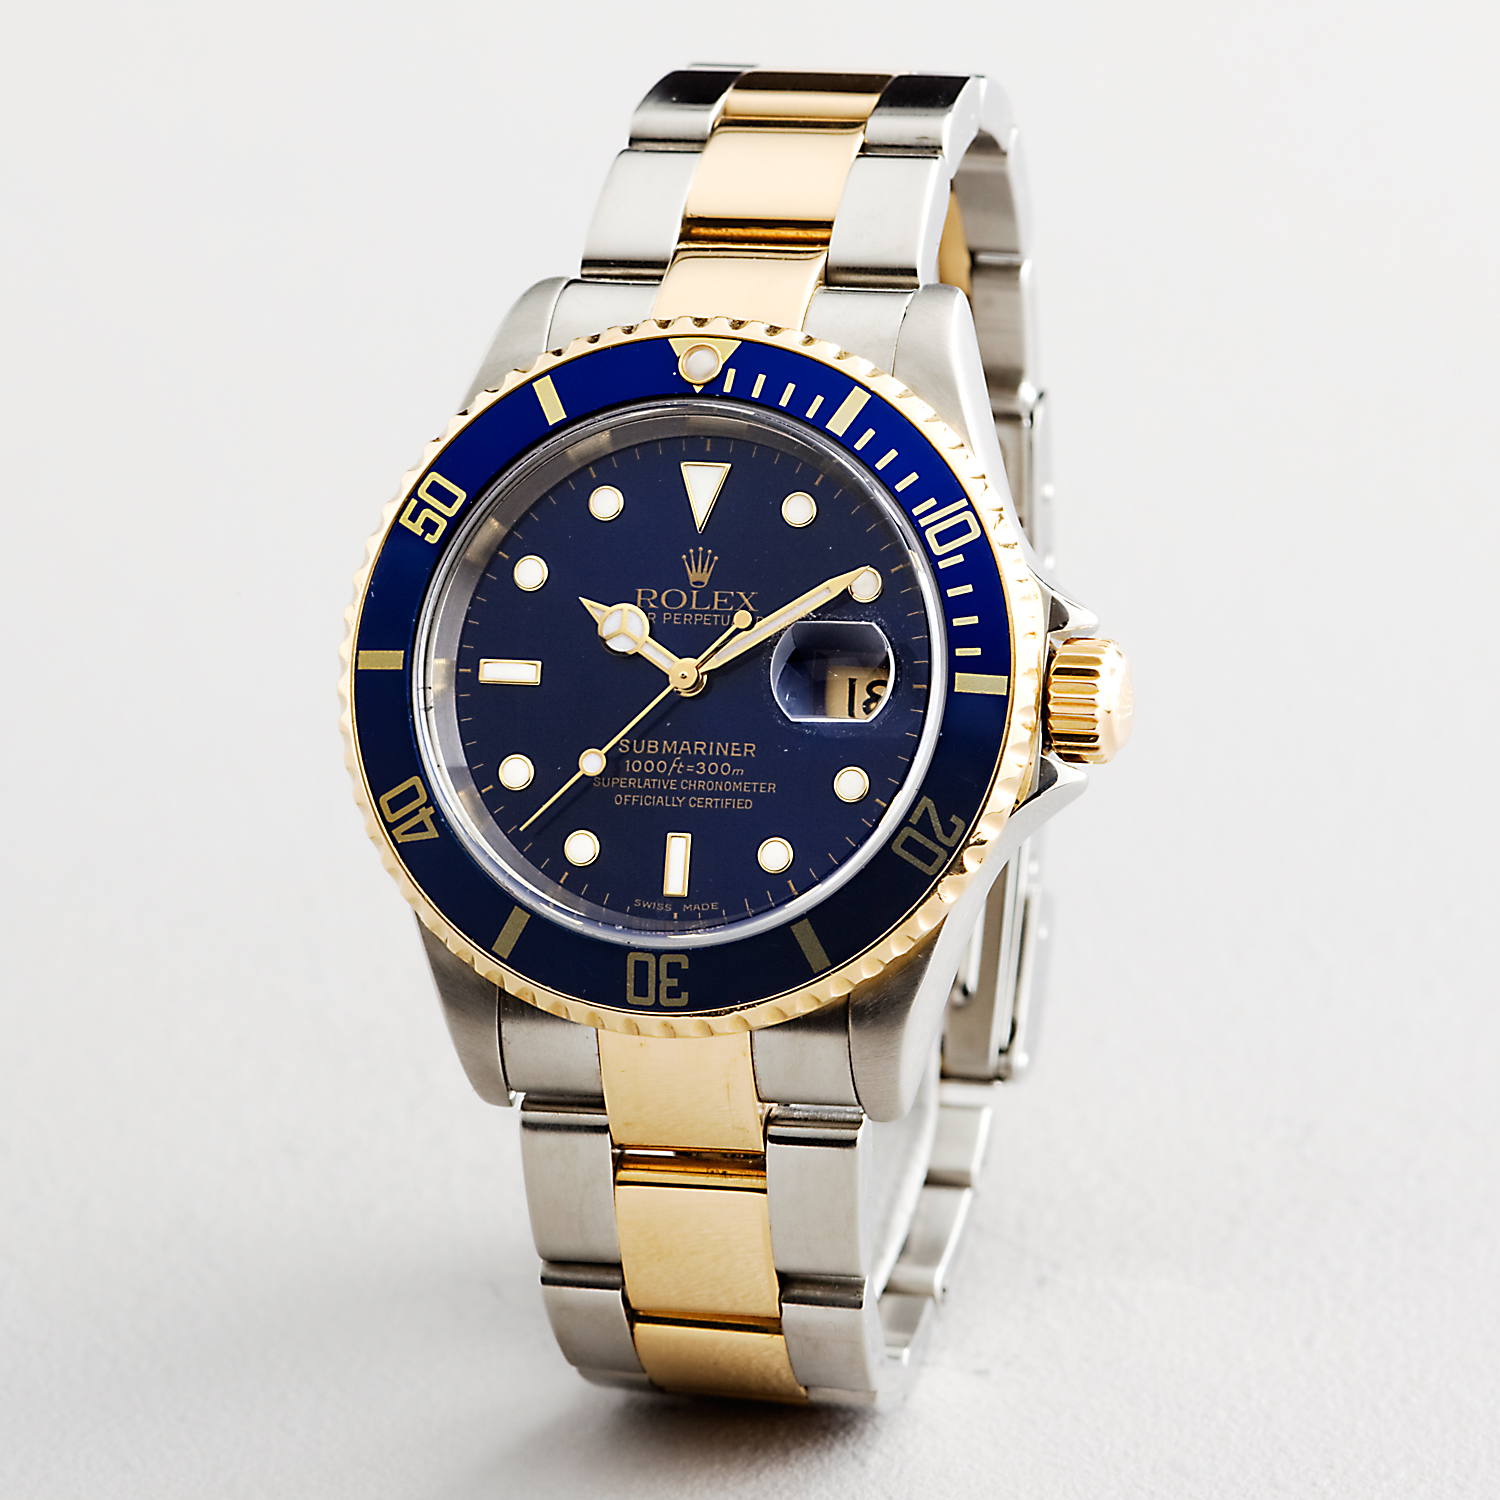 Rolex Oyster Perpetual Submariner Ceramic Bezel Watch Blue With Stainless Steel Silver Gold Belt